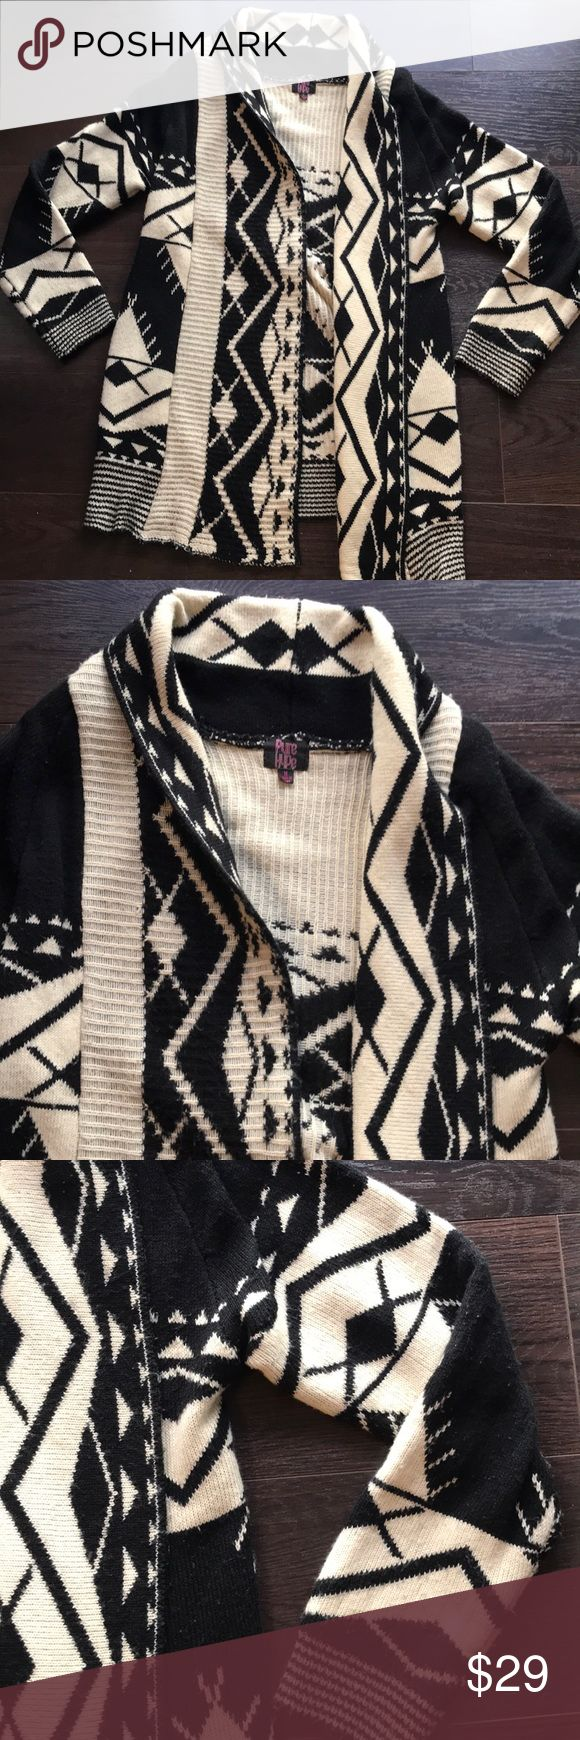 Pure Hype cozy tribal cardigan sweater - Medium Pure Hype cozy tribal cardigan sweater - Medium. Gently loved. Slight pilling but otherwise perfect. Fantastic for the office. Medium thickness. Warm and soft. Cream and black. Wear with skinny jeans and ugg boots.  ❤️Make an offer! Please remember Poshmark takes 20% Sorry no trades ❤️I ship quickly! Please accept your packages on the app as soon as you receive them so that the sellers can be paid.  ❤️Please read all descriptions and note…